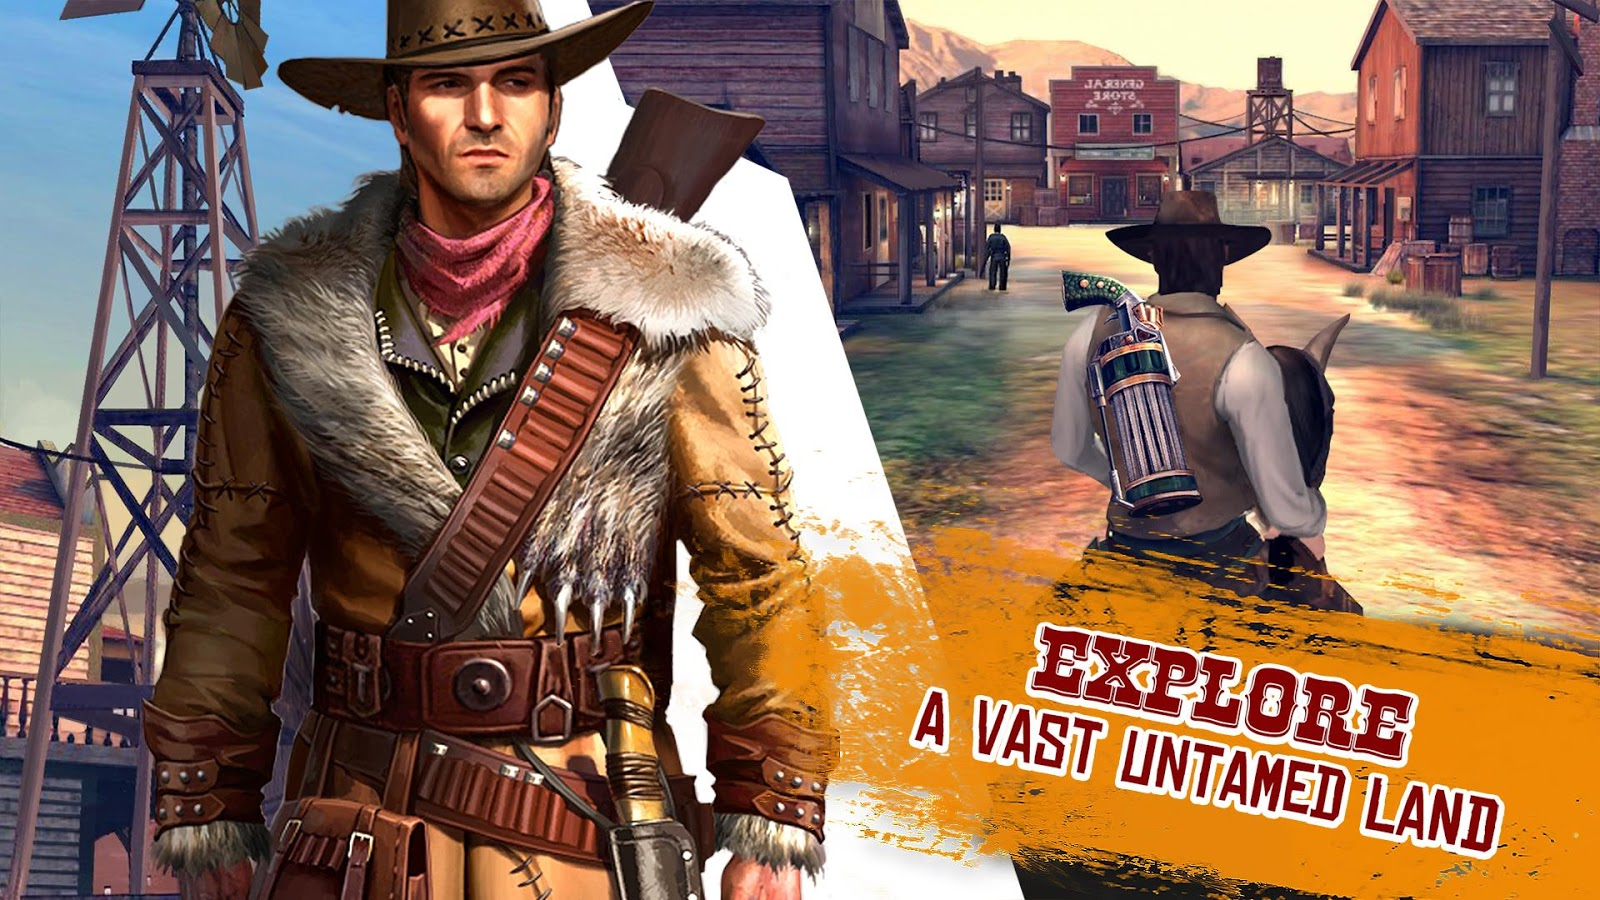 400 MB] Download Red Dead Redemption 2 Like Game For Android